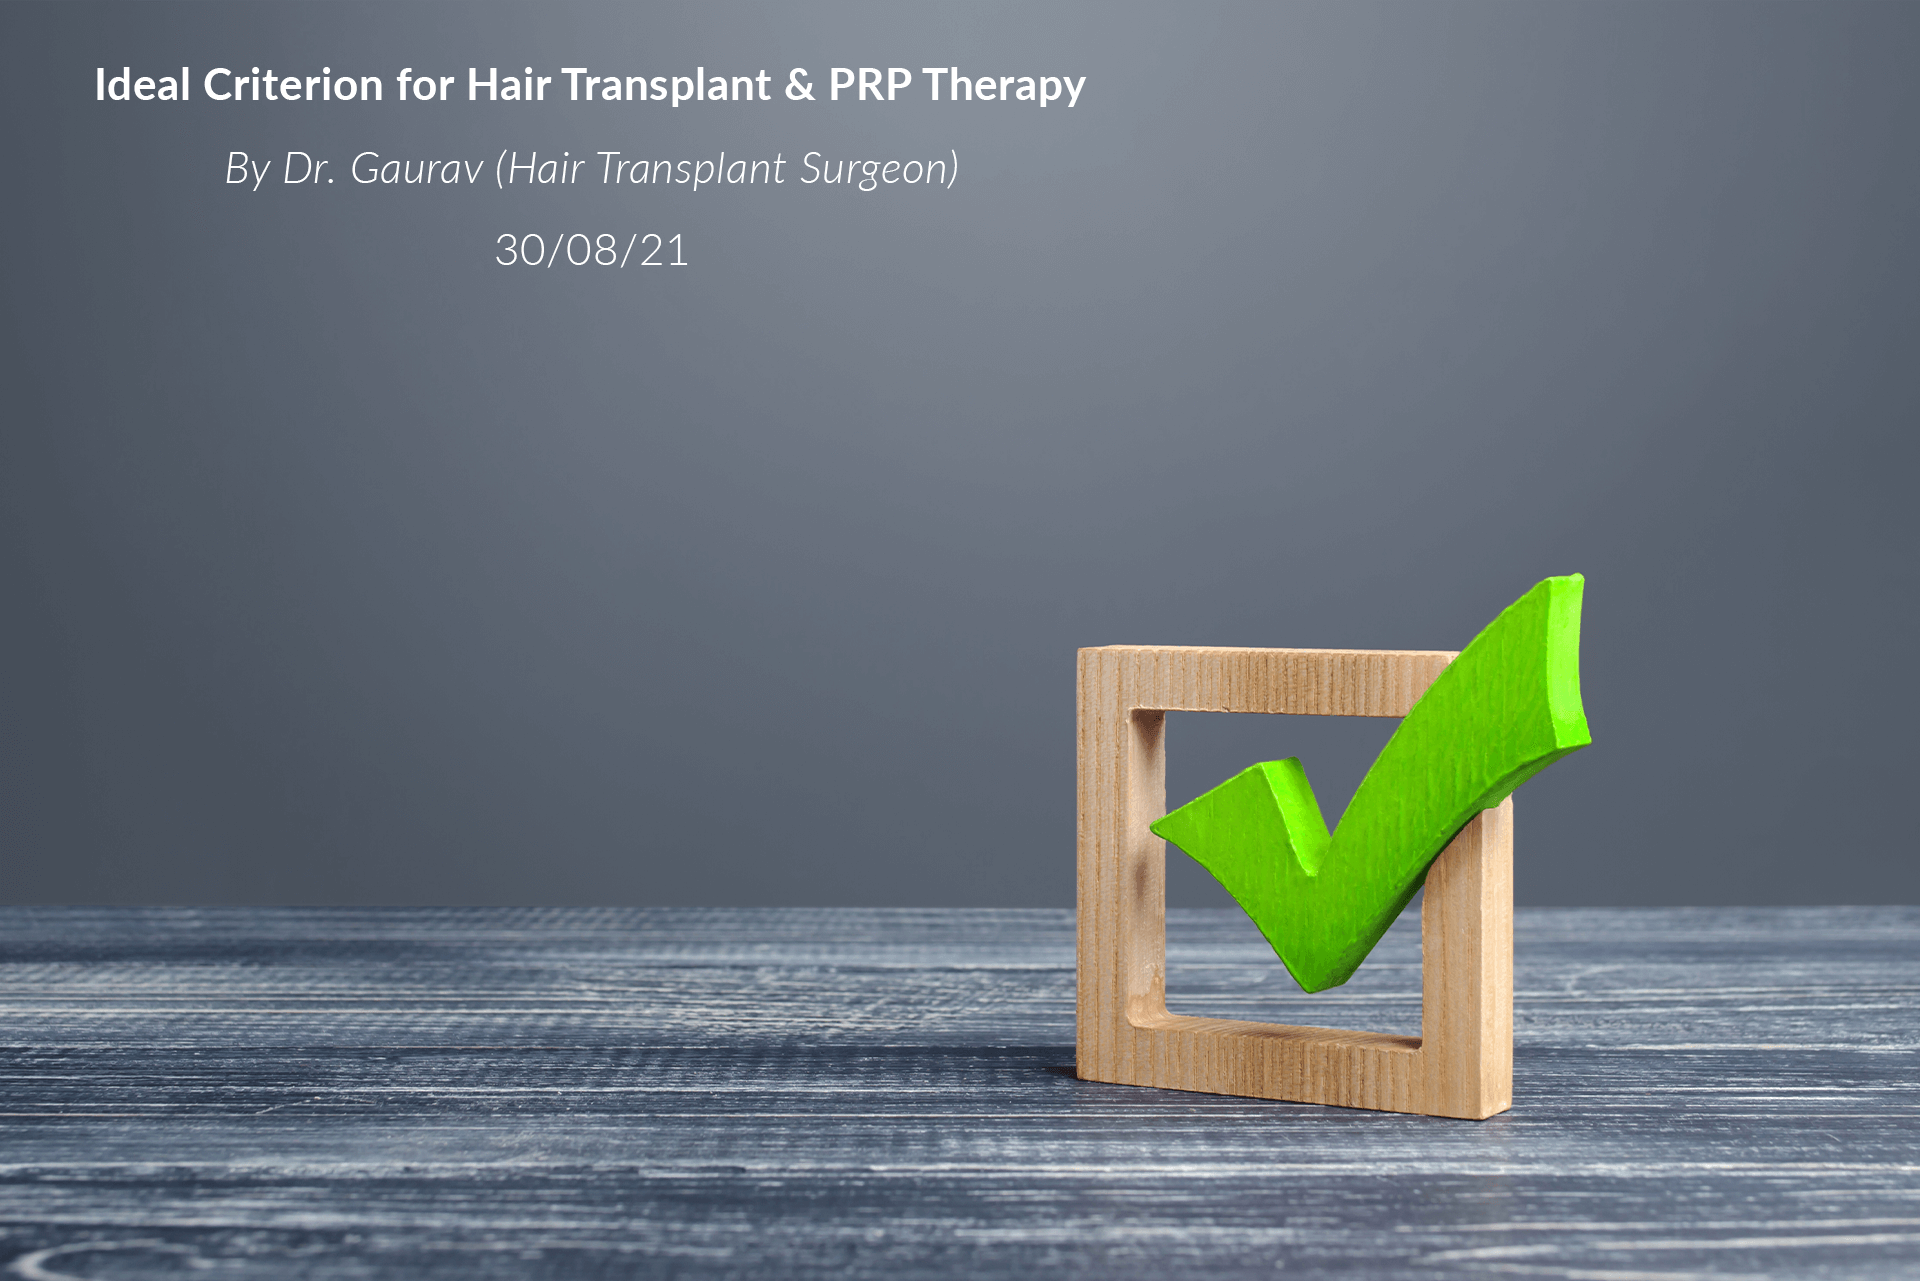 Ideal Criterion for Hair Transplant & PRP Therapy